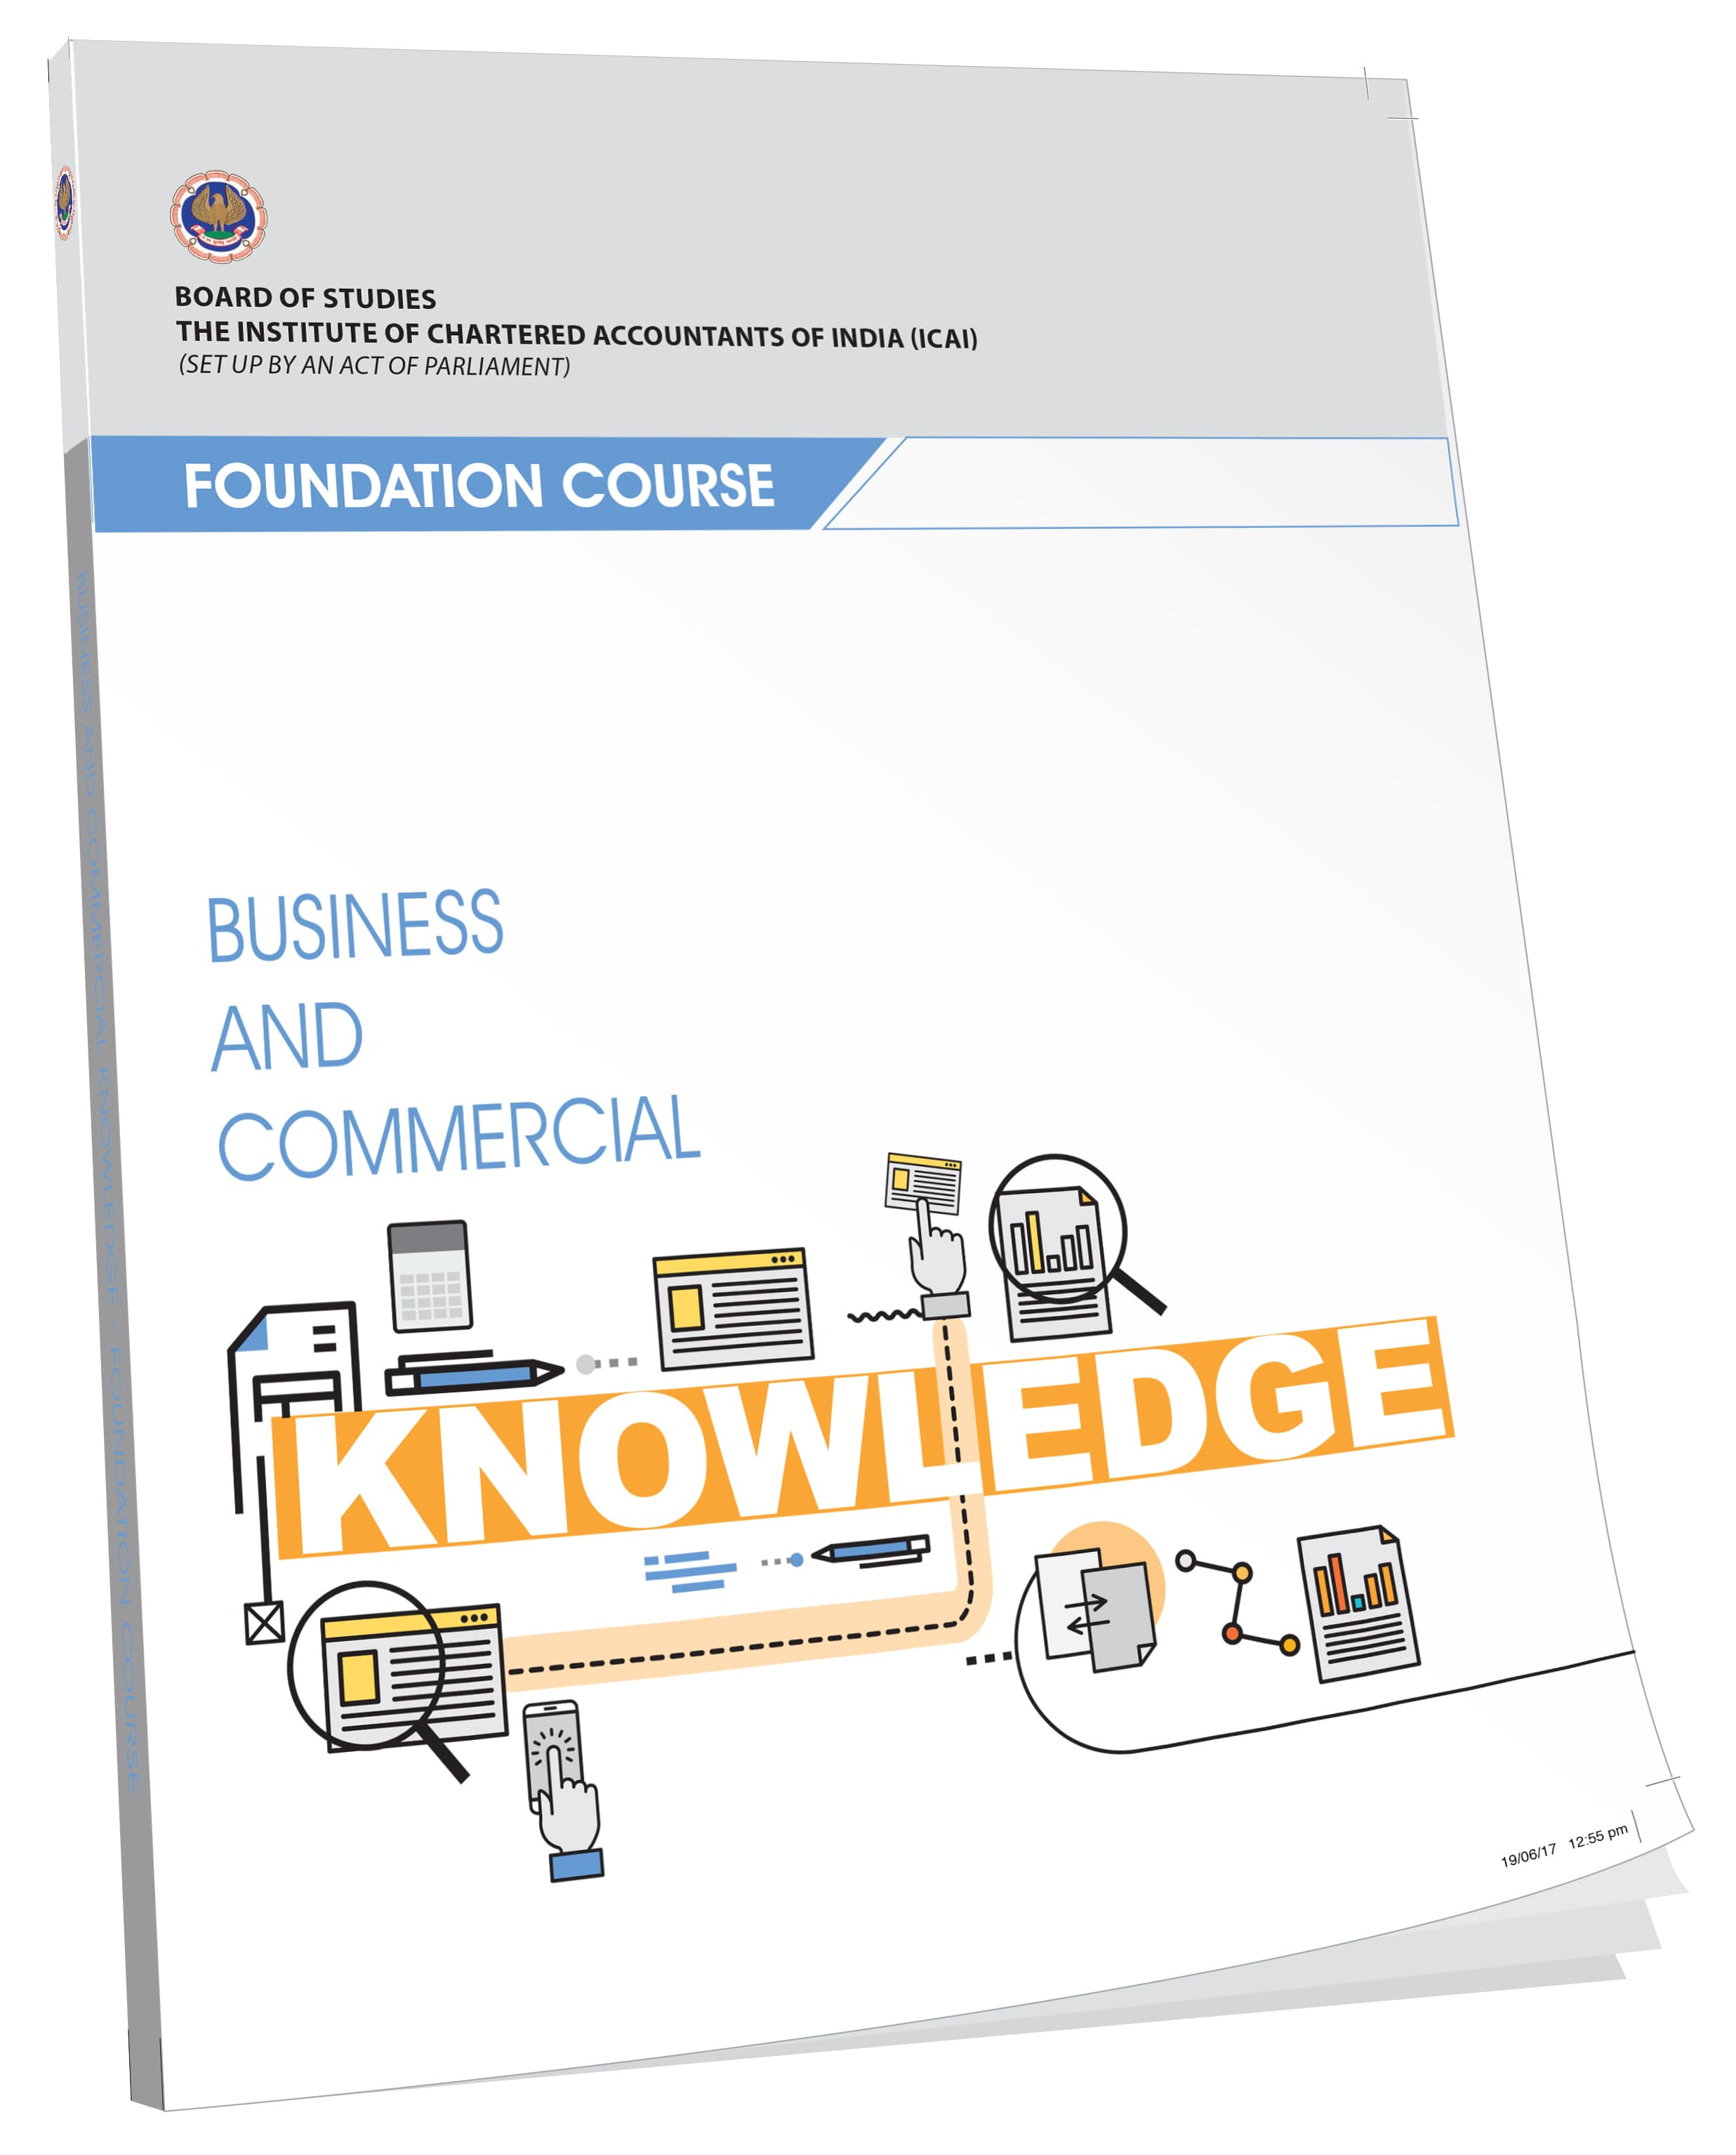 Business and Commercial Knowledge (English), July 2017